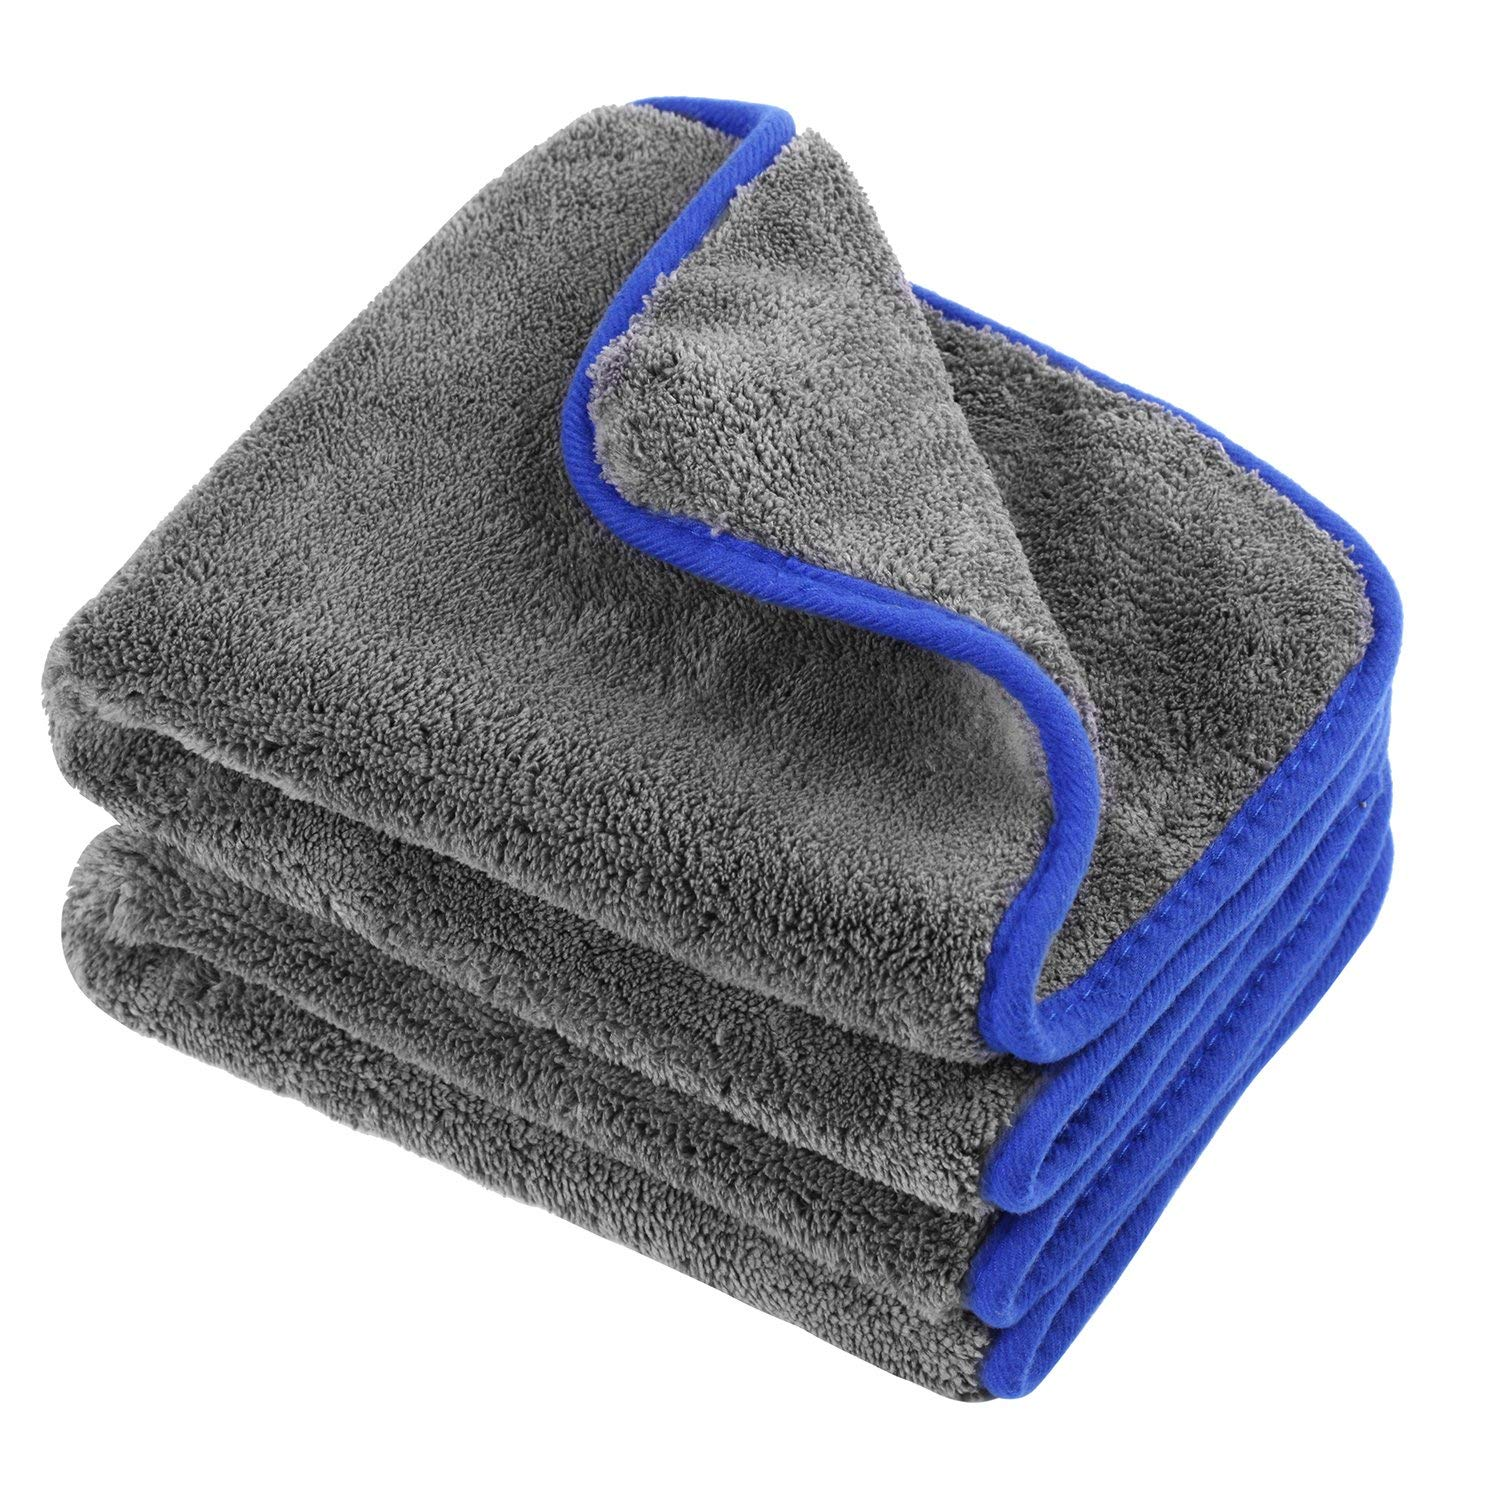 Microfiber Cleaning Towel/Cloth,ON THE WAY Dual-Purpose 1200gsm Microfiber Towel Lint-free Dual Layer Ultra-Thick Car Wash Buffing Wax Polishing and Drying Cloth Auto Detailing Towels(40x45cm)